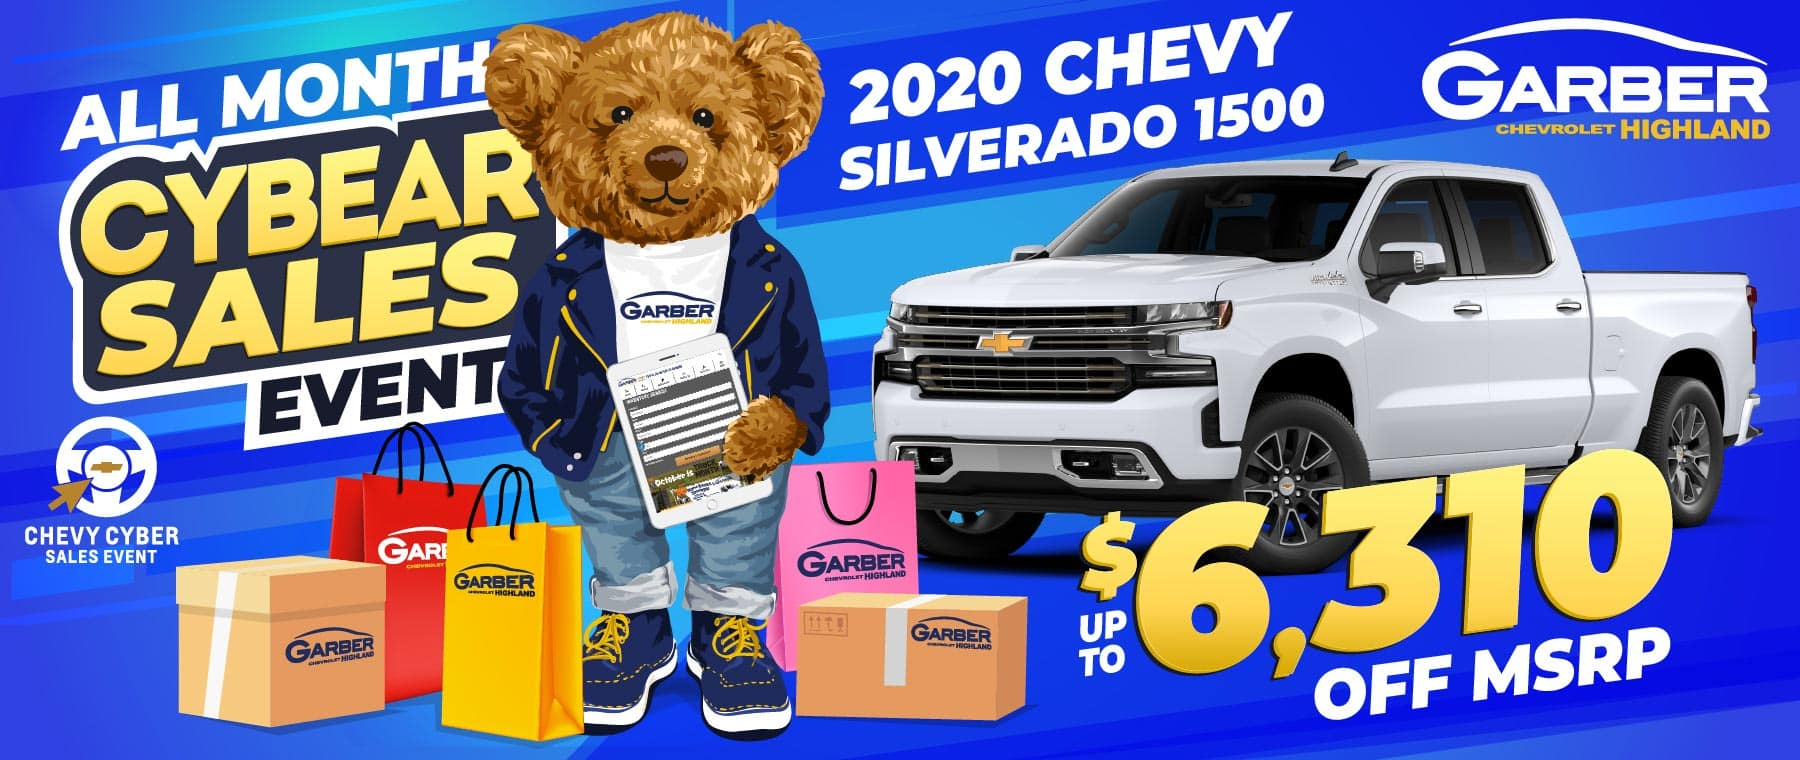 2020 Chevy Silverado 1500 - SAVE up to $6310 off MSRP